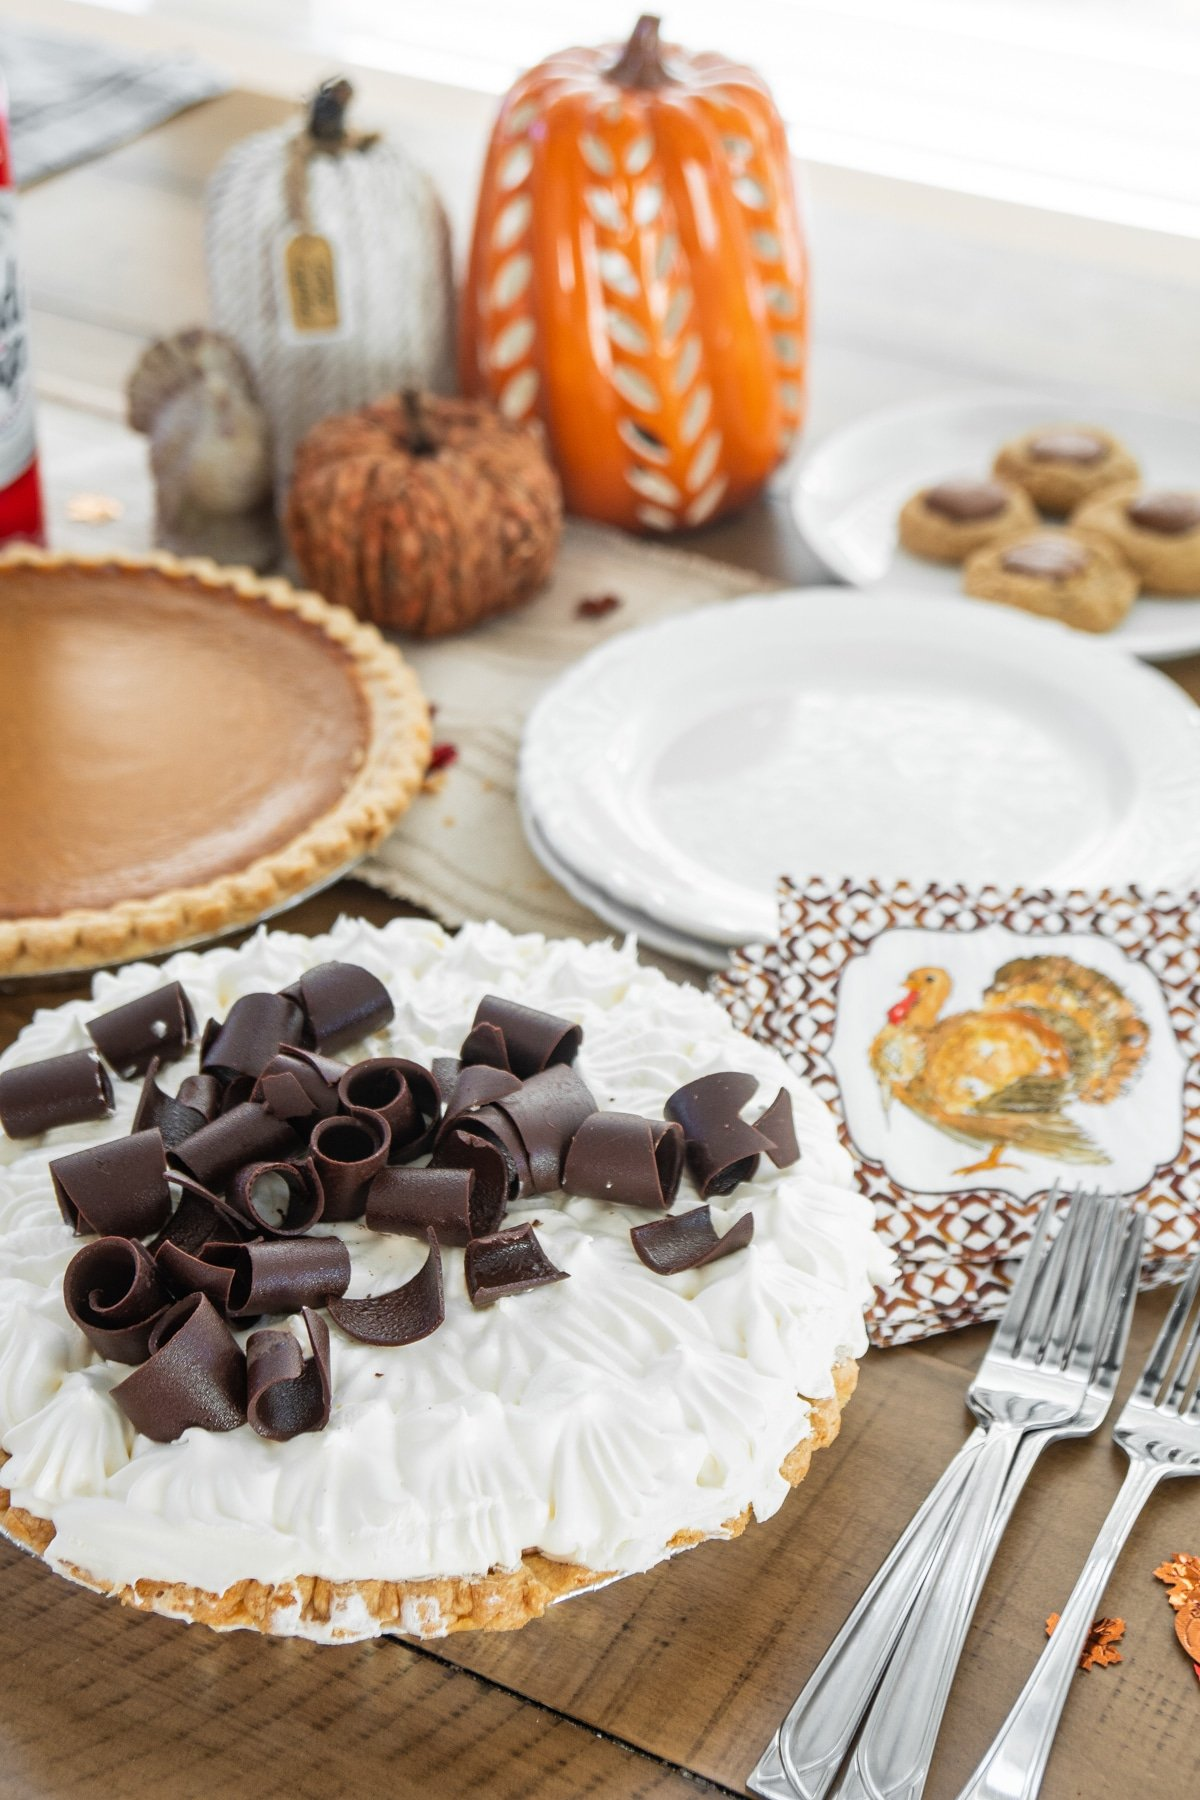 Chocolate and pumpkin pie on a table with forks